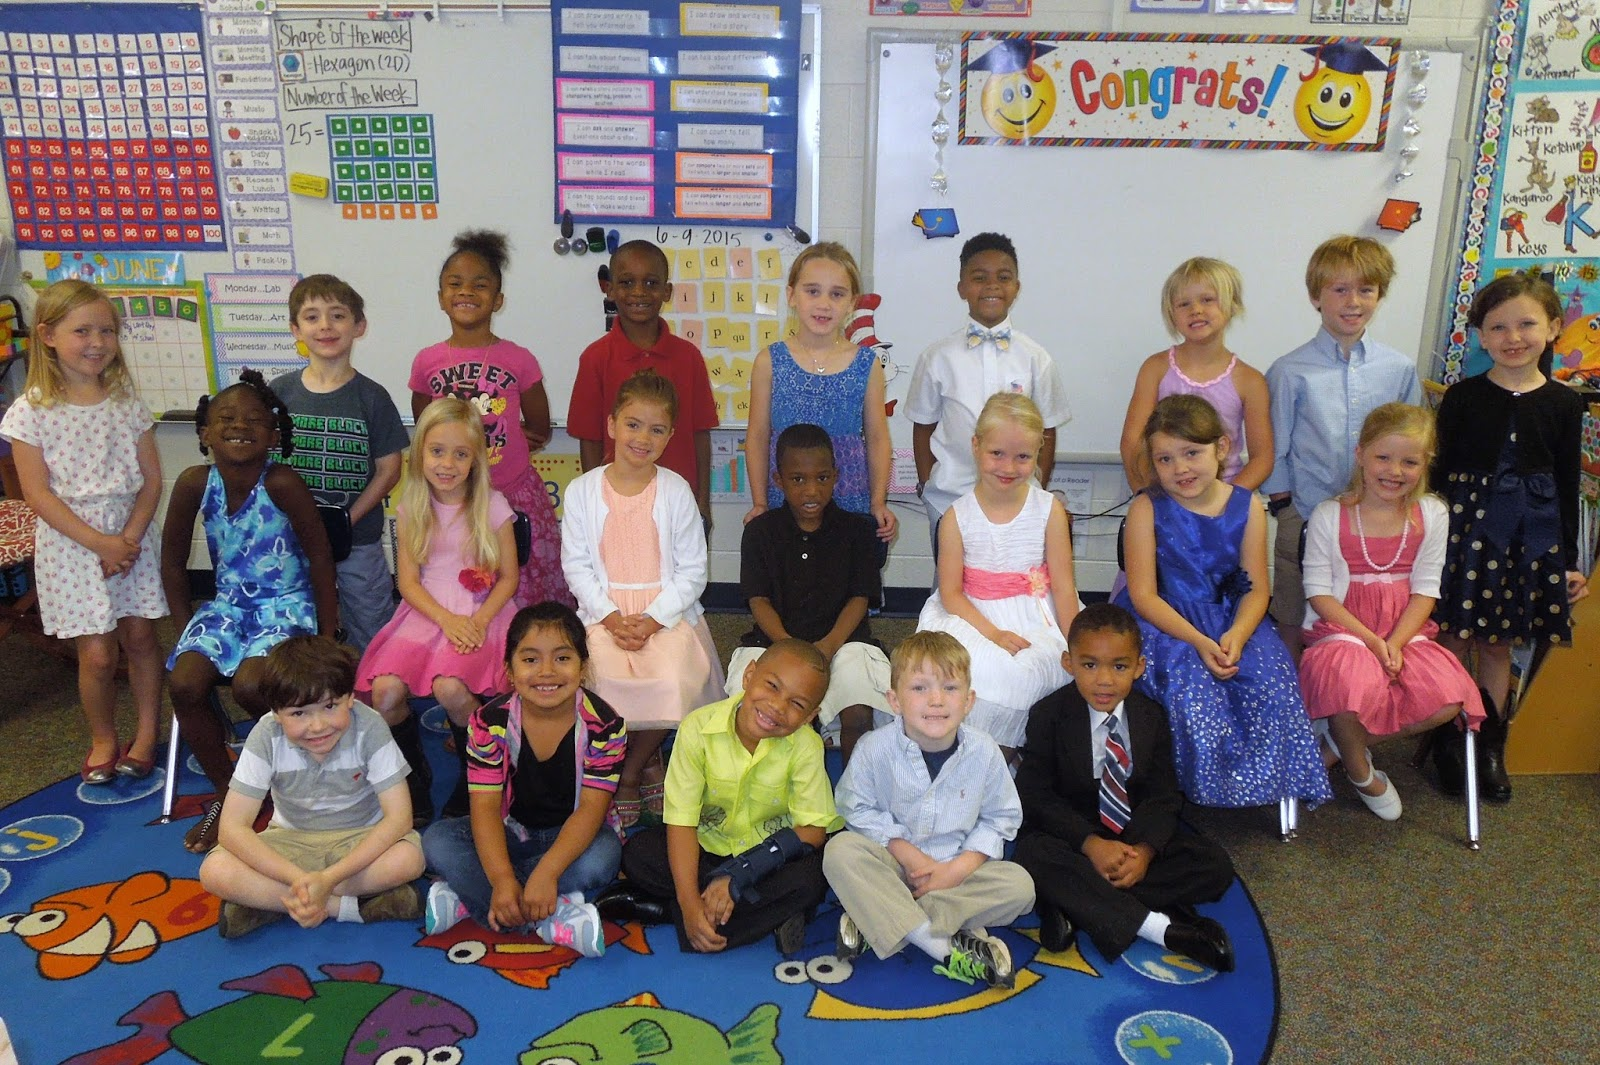 national city preschool miss jones kindergarten class june 2015 211